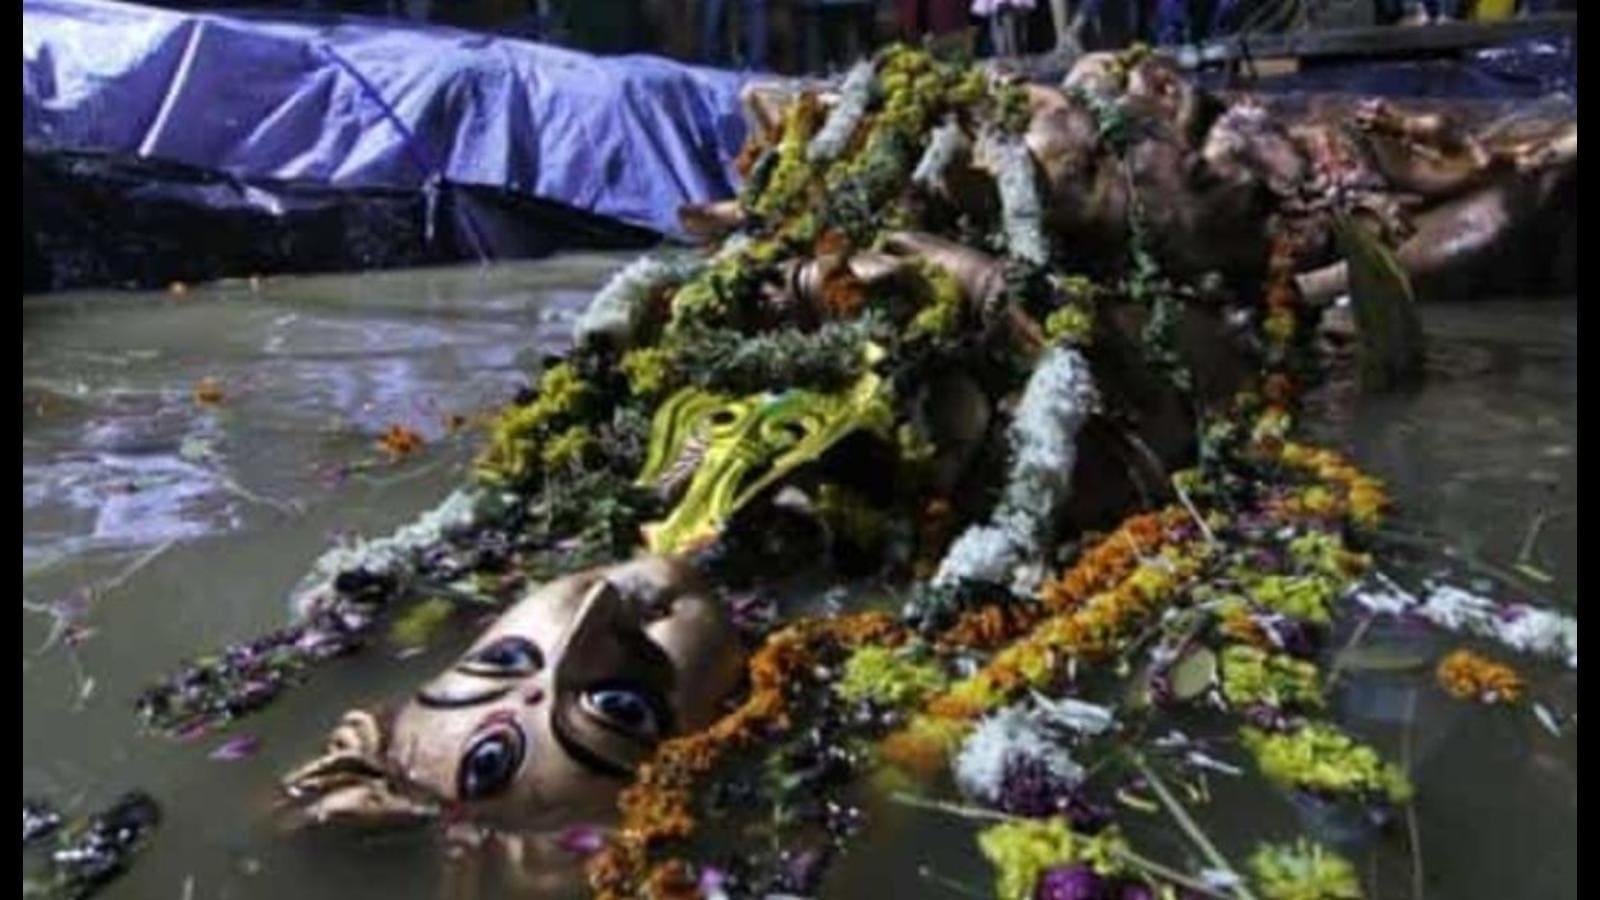 Time for eco-friendly idol immersion after Durga Puja